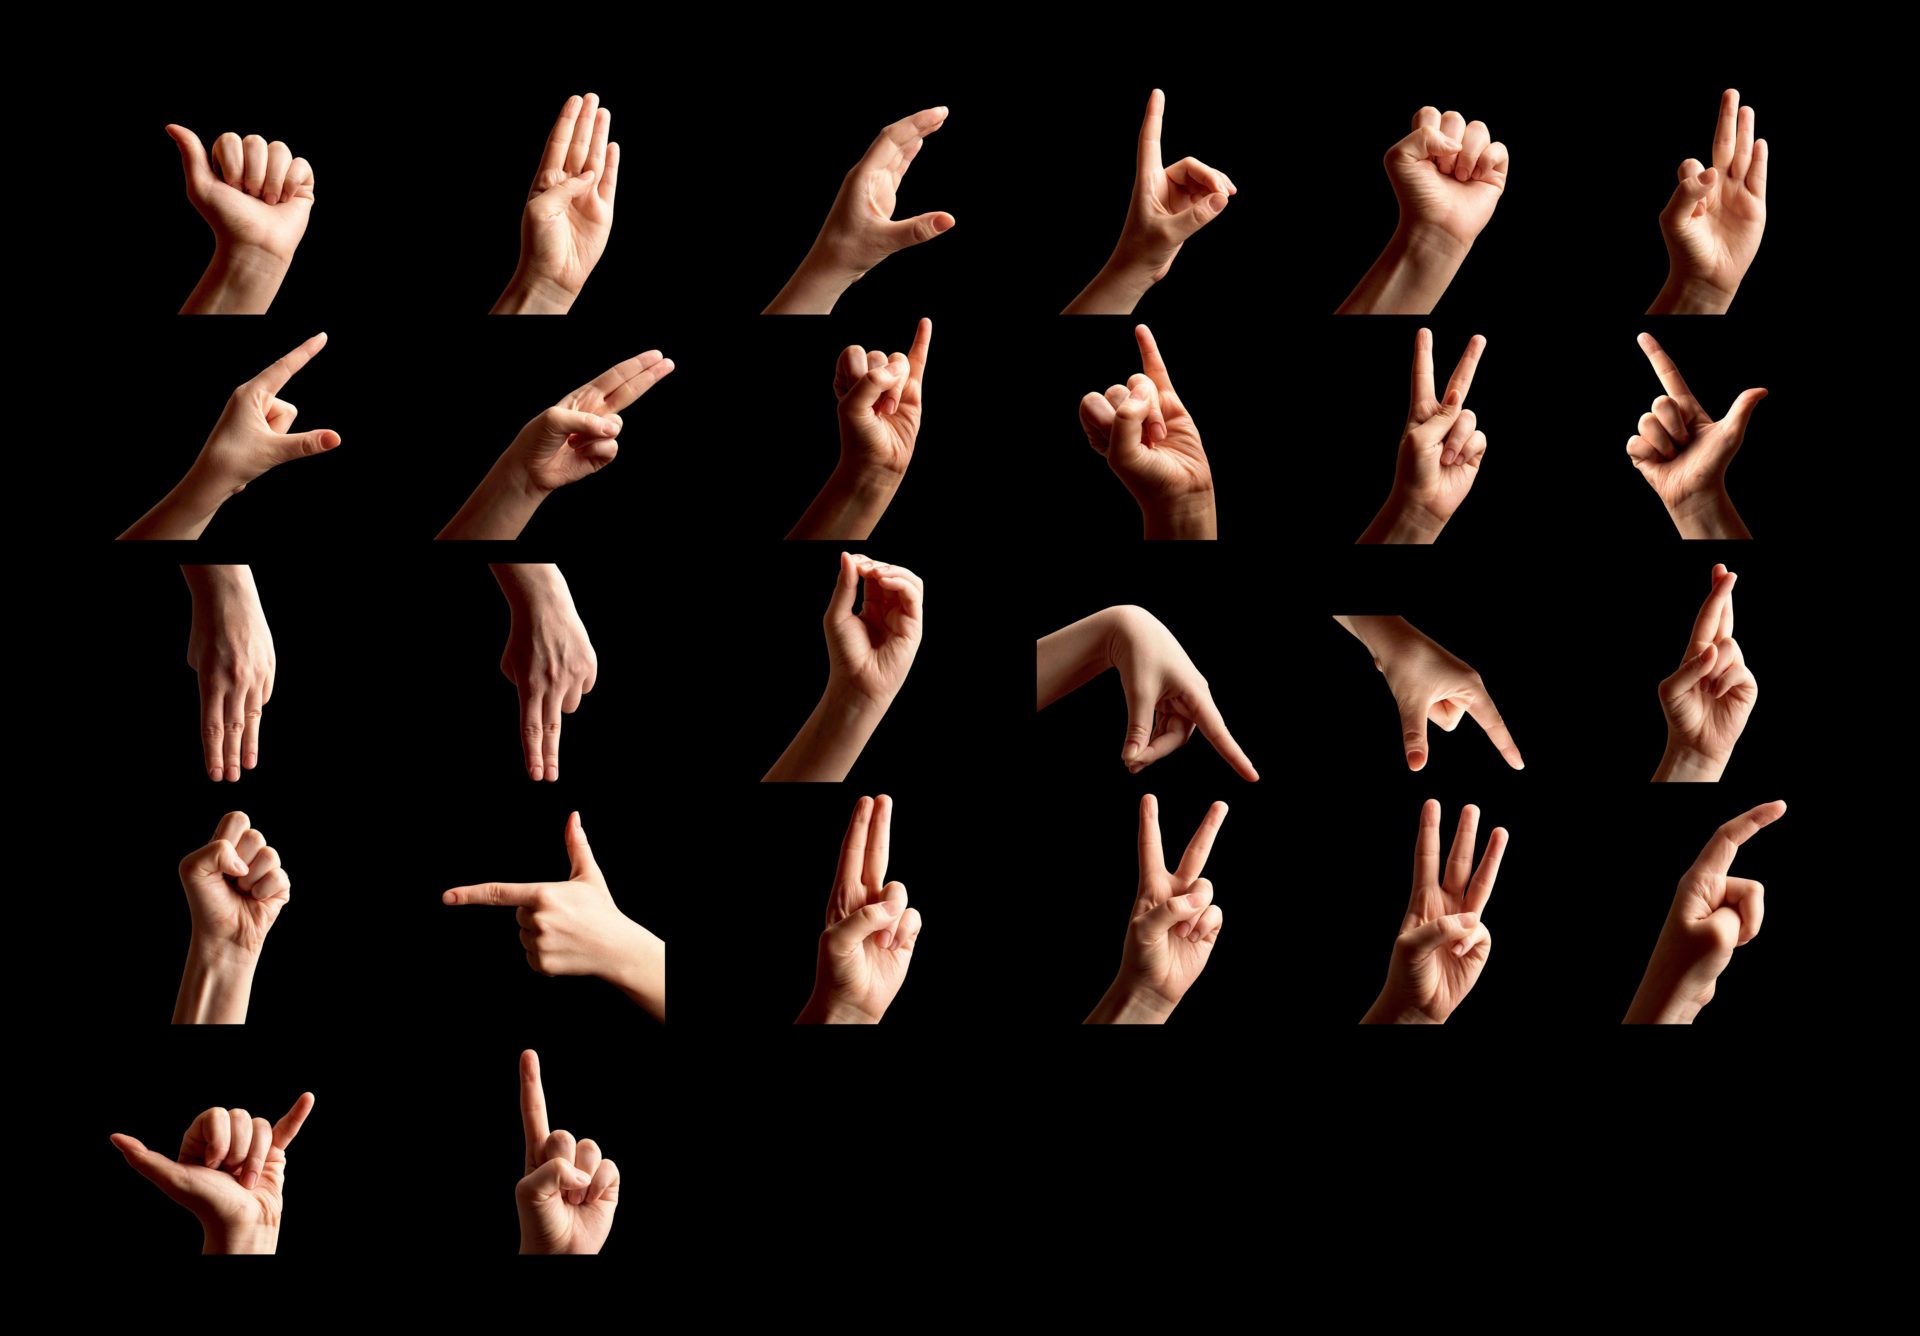 Hand shapes for the sign language alphabet